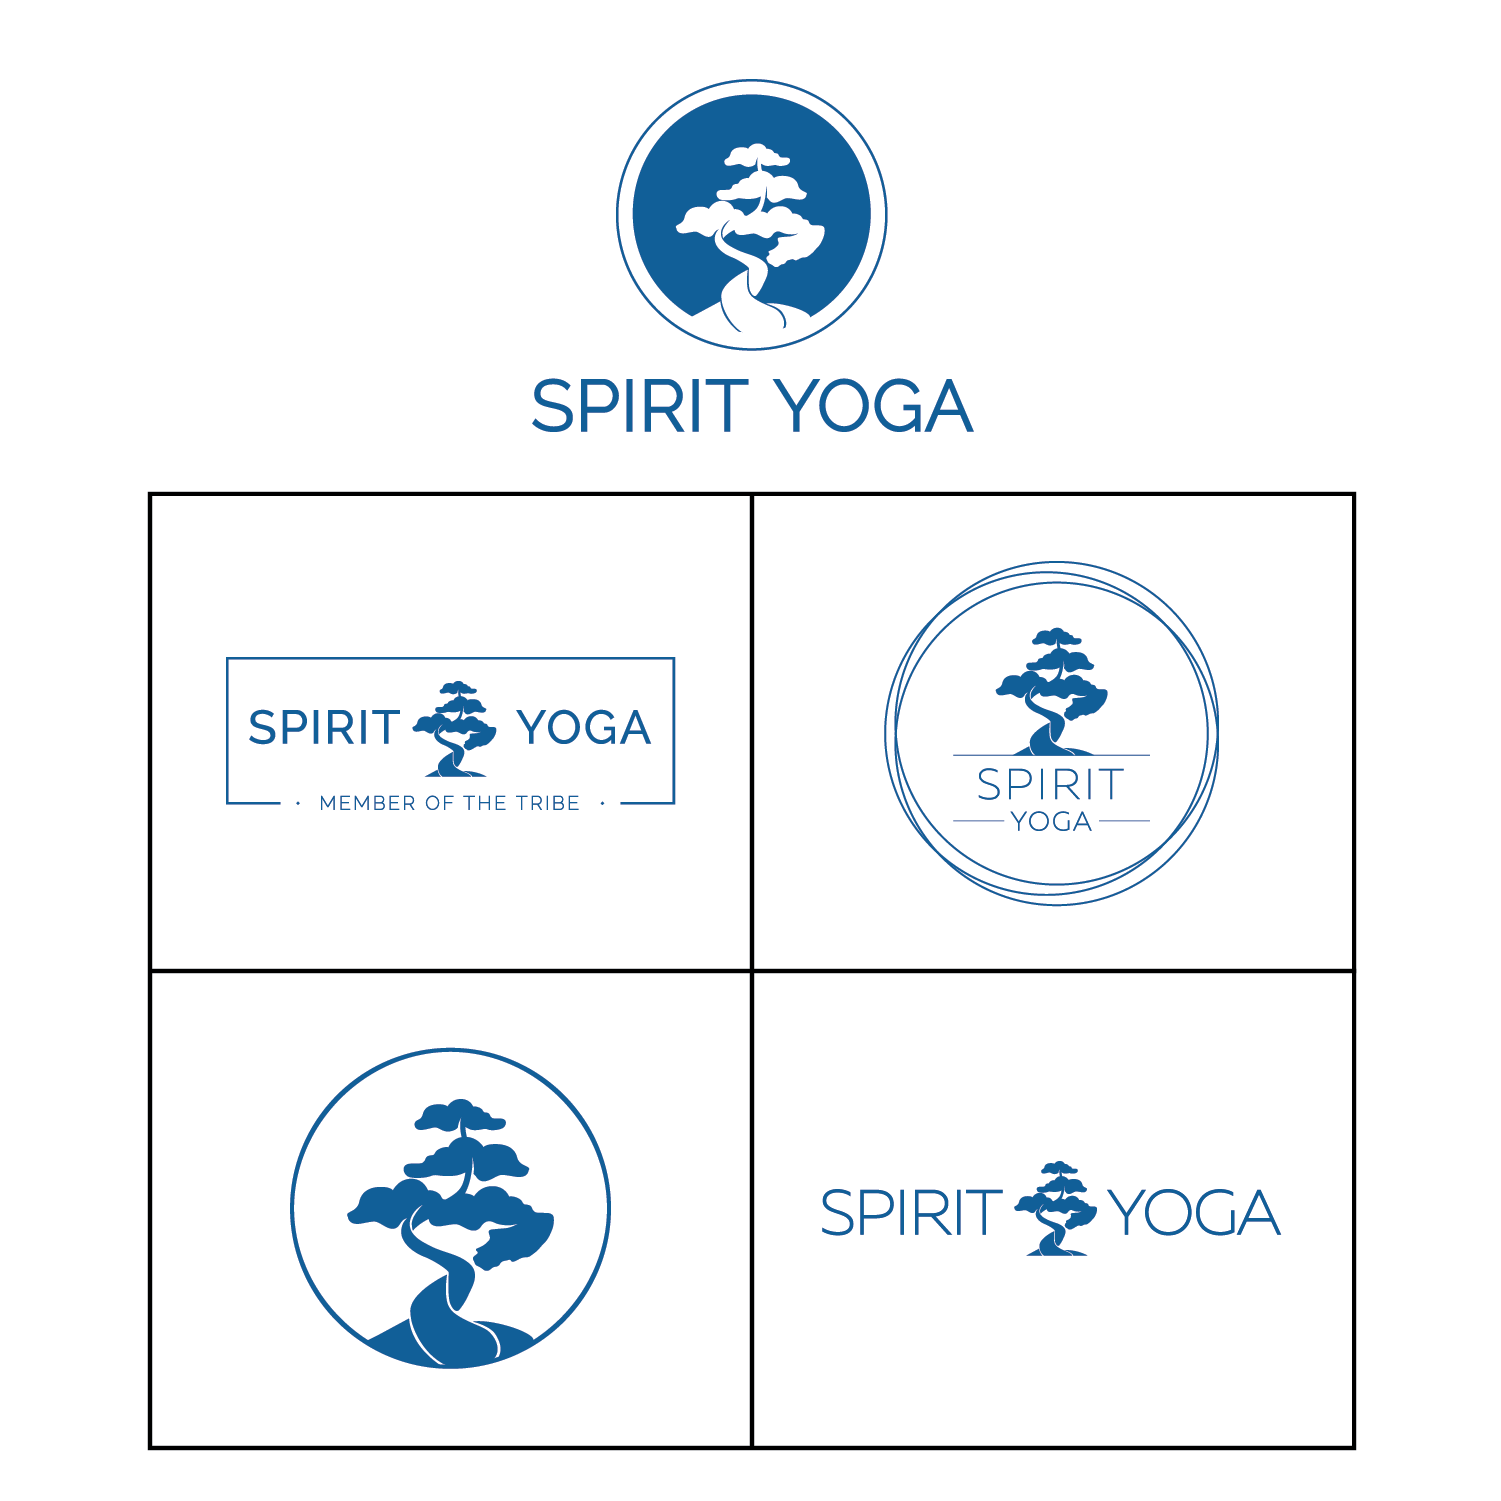 LOGO+MERCH design+REBRAND - Spirit Yoga is a thriving yoga studio based in San Diego with a focus on community for all types of individuals regardless of flexibility, age, gender or shape. The studio wanted to embody their logo redesign to reflect their comfortable atmosphere to practice and connect with others.